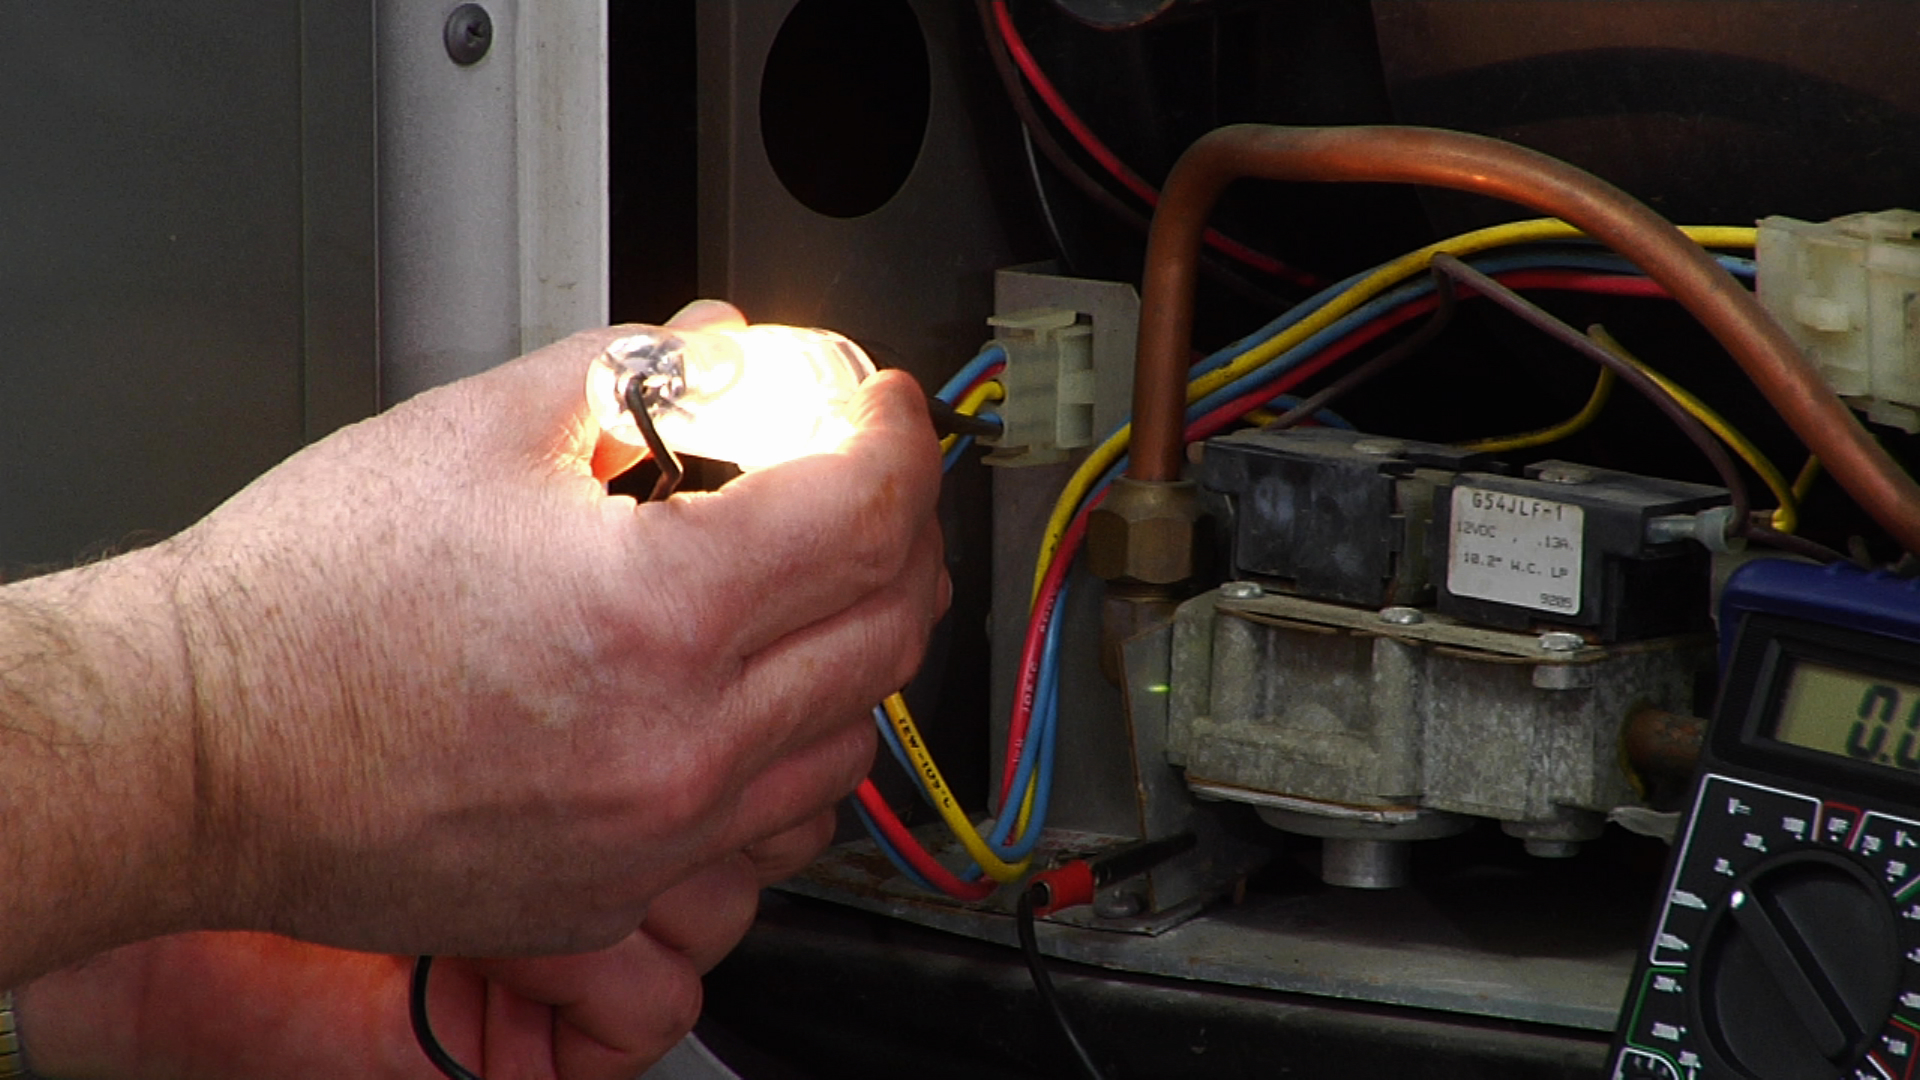 Troubleshooting an RV Furnace on